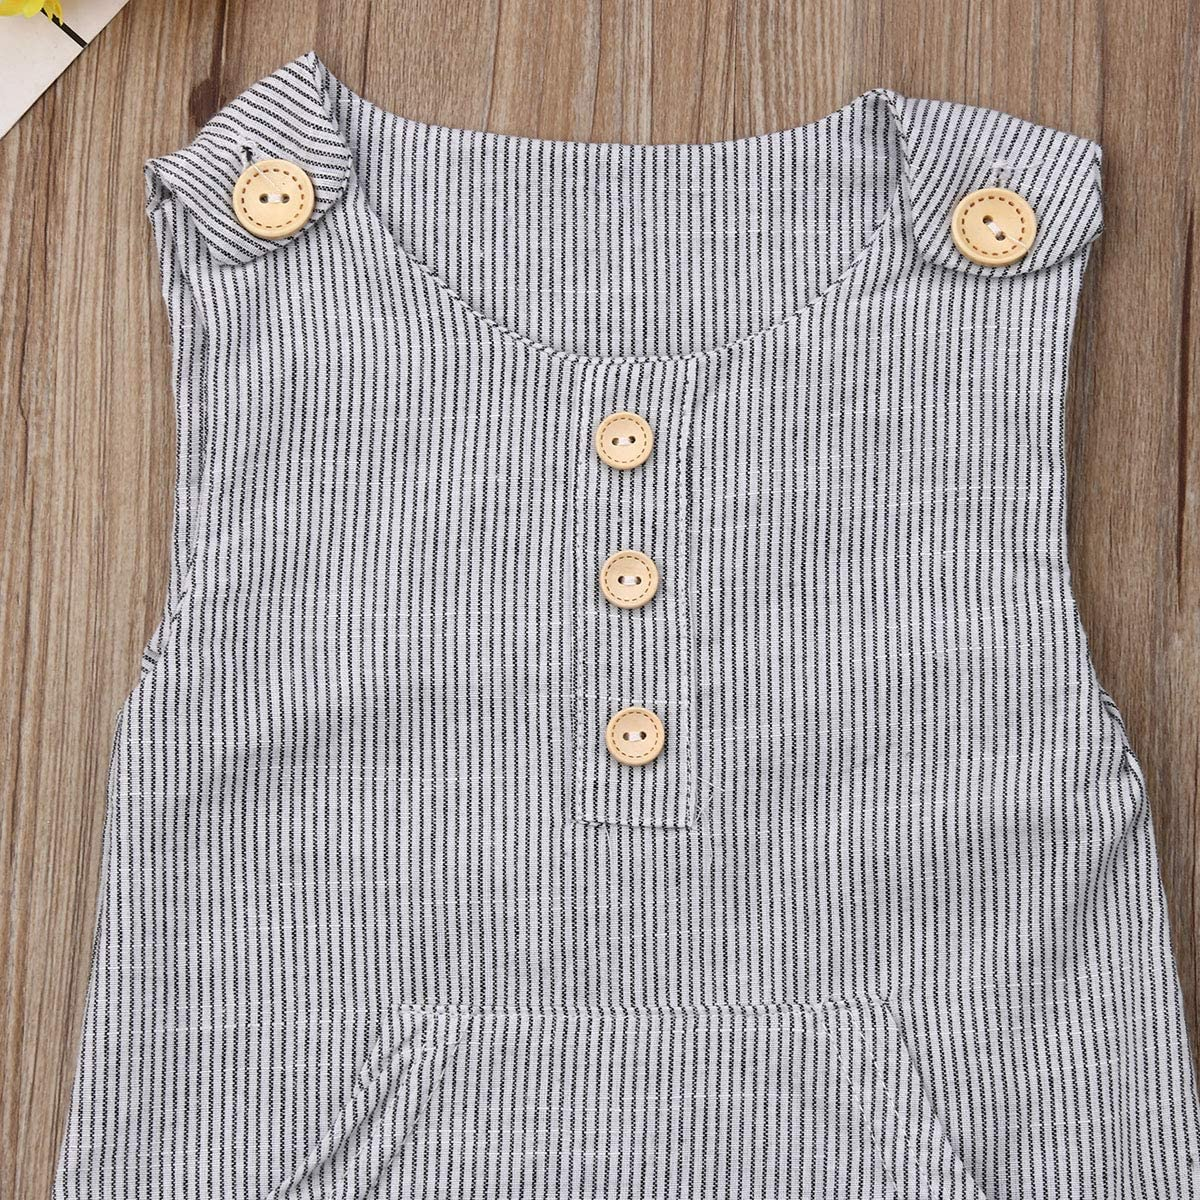 Piacakece Newborn Infant Baby Boy Girl Stripe Romper Overall Button Jumpsuit Bodysuit Pant Clothes Outfits